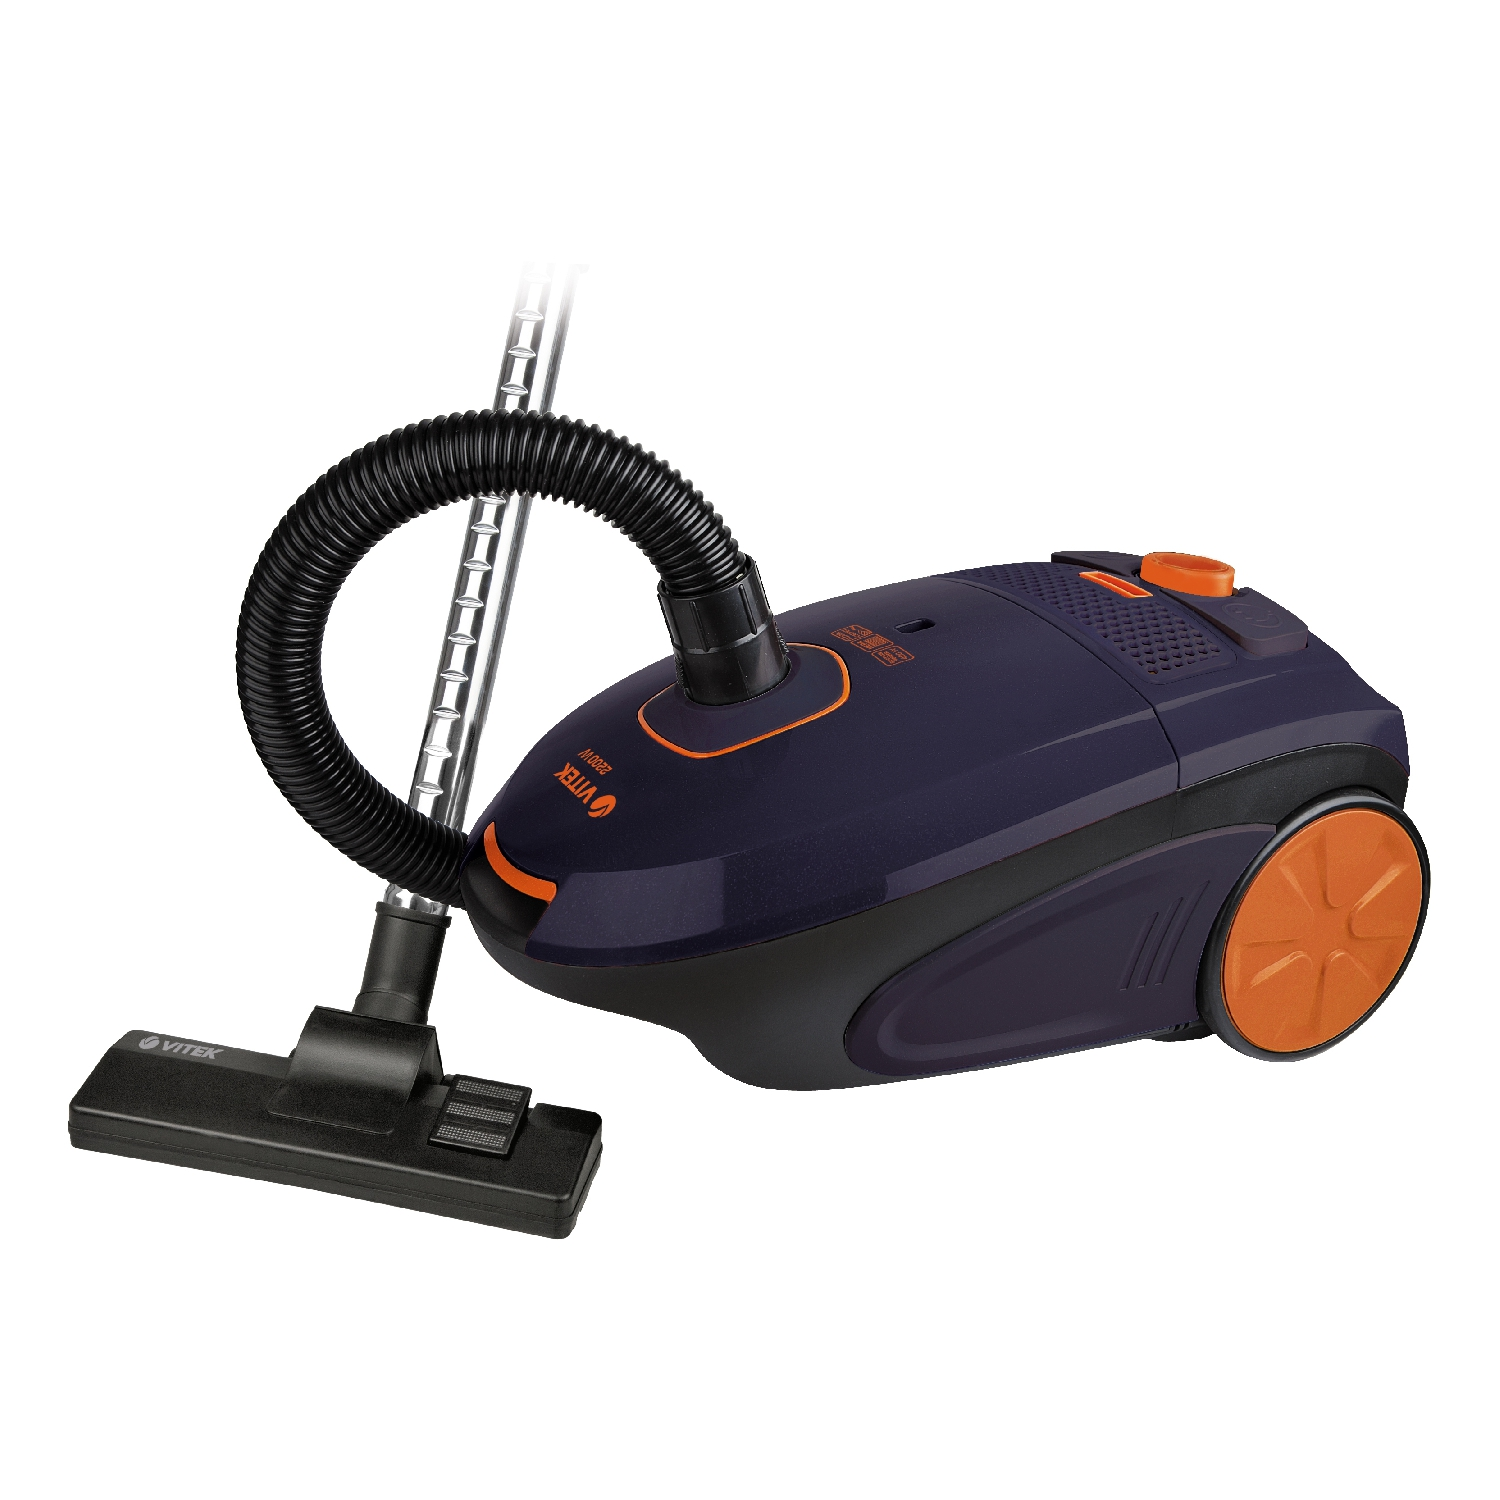 The electric vacuum cleaner Vitek VT-8106VT